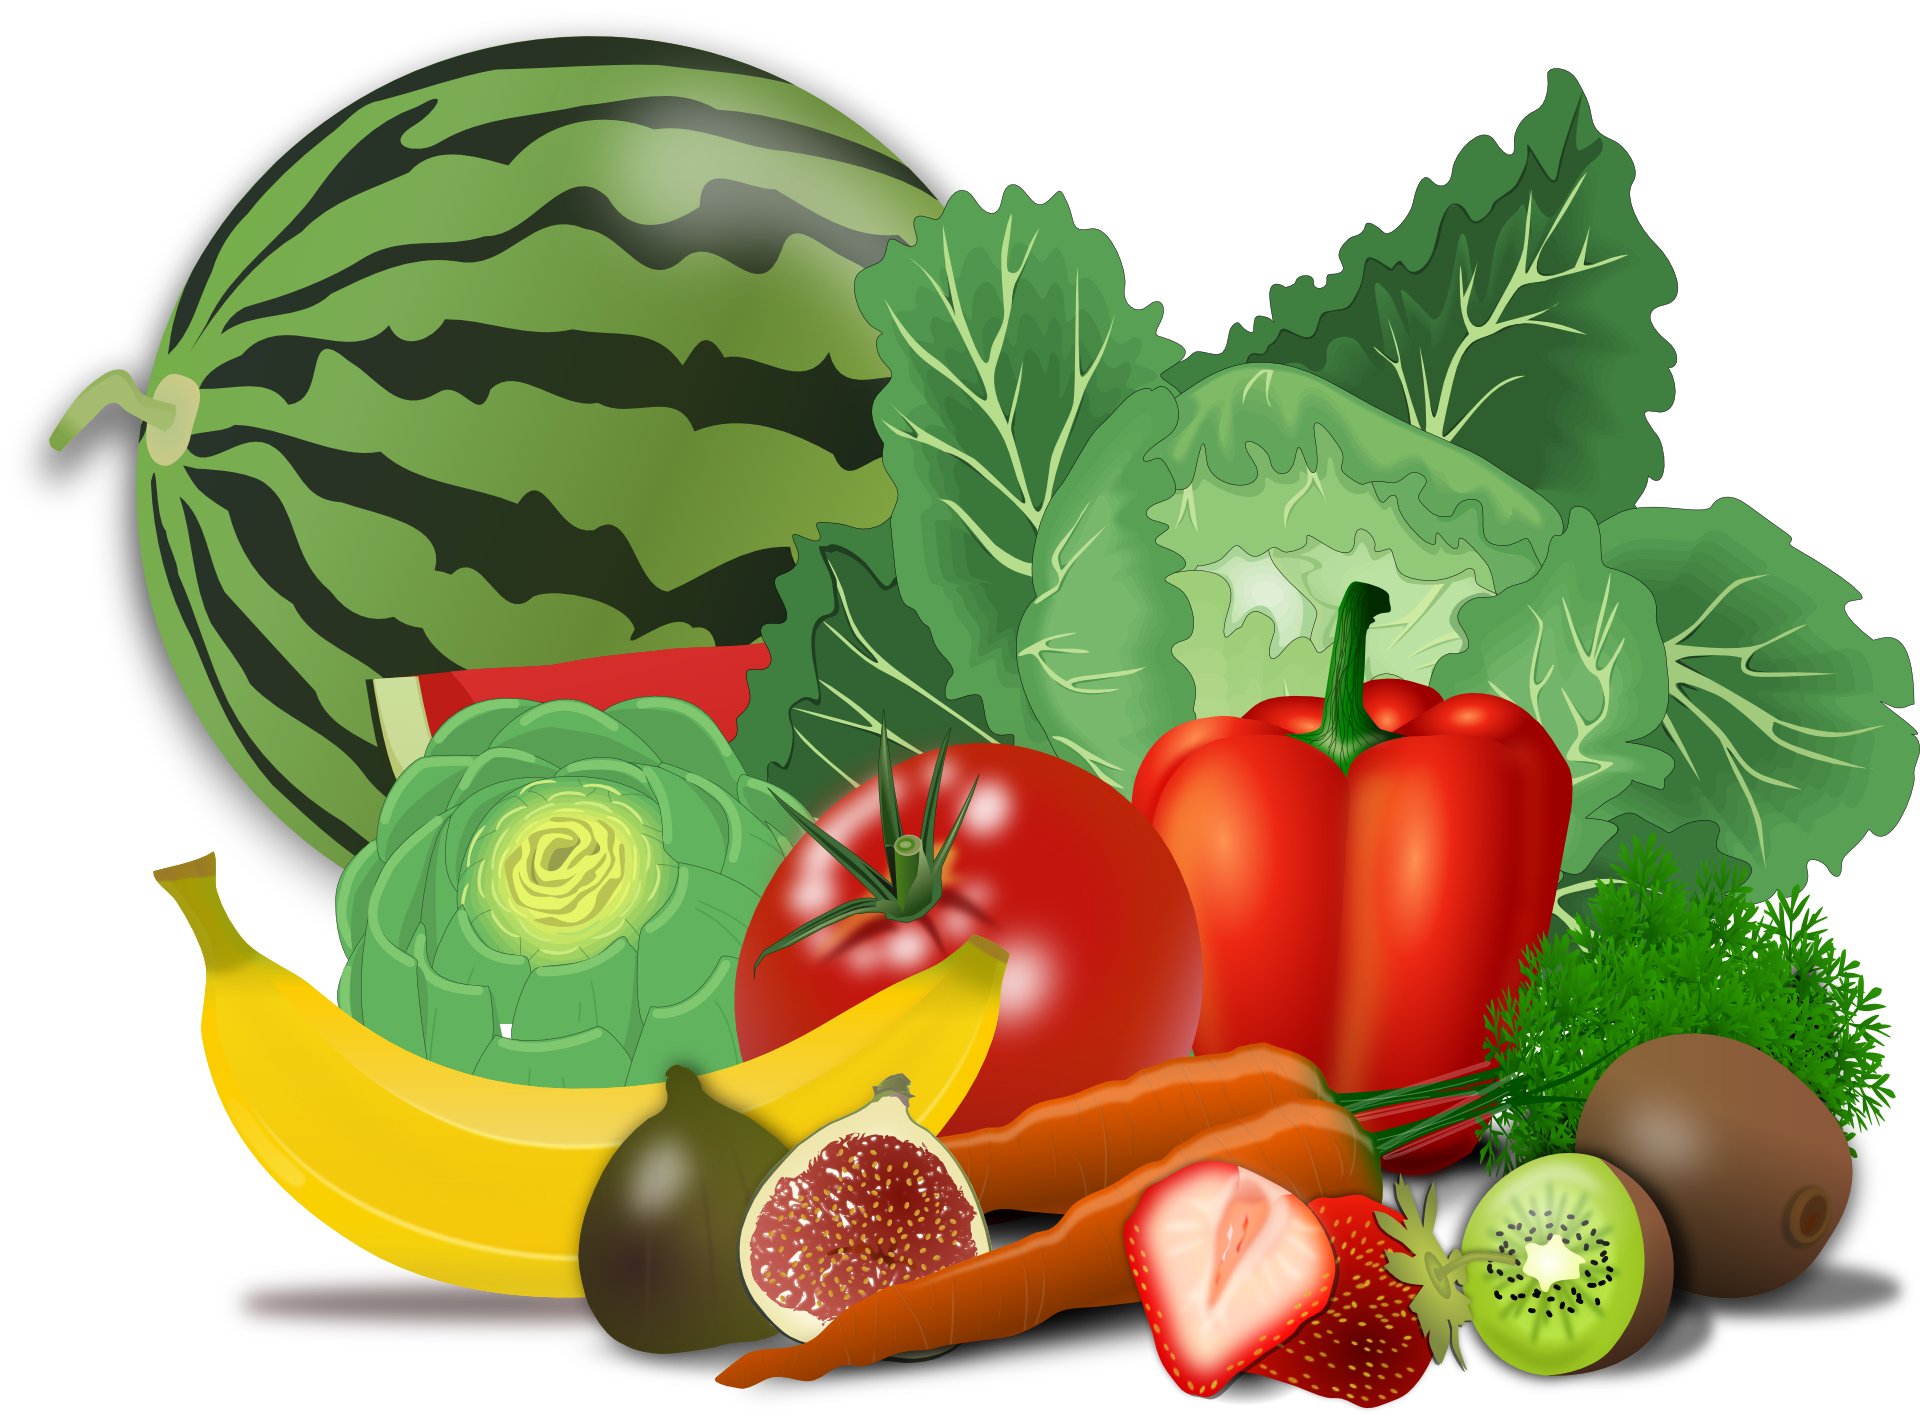 1920x1415 Drawing Of Healthy Food Of Fruit And Vegetables Free Image